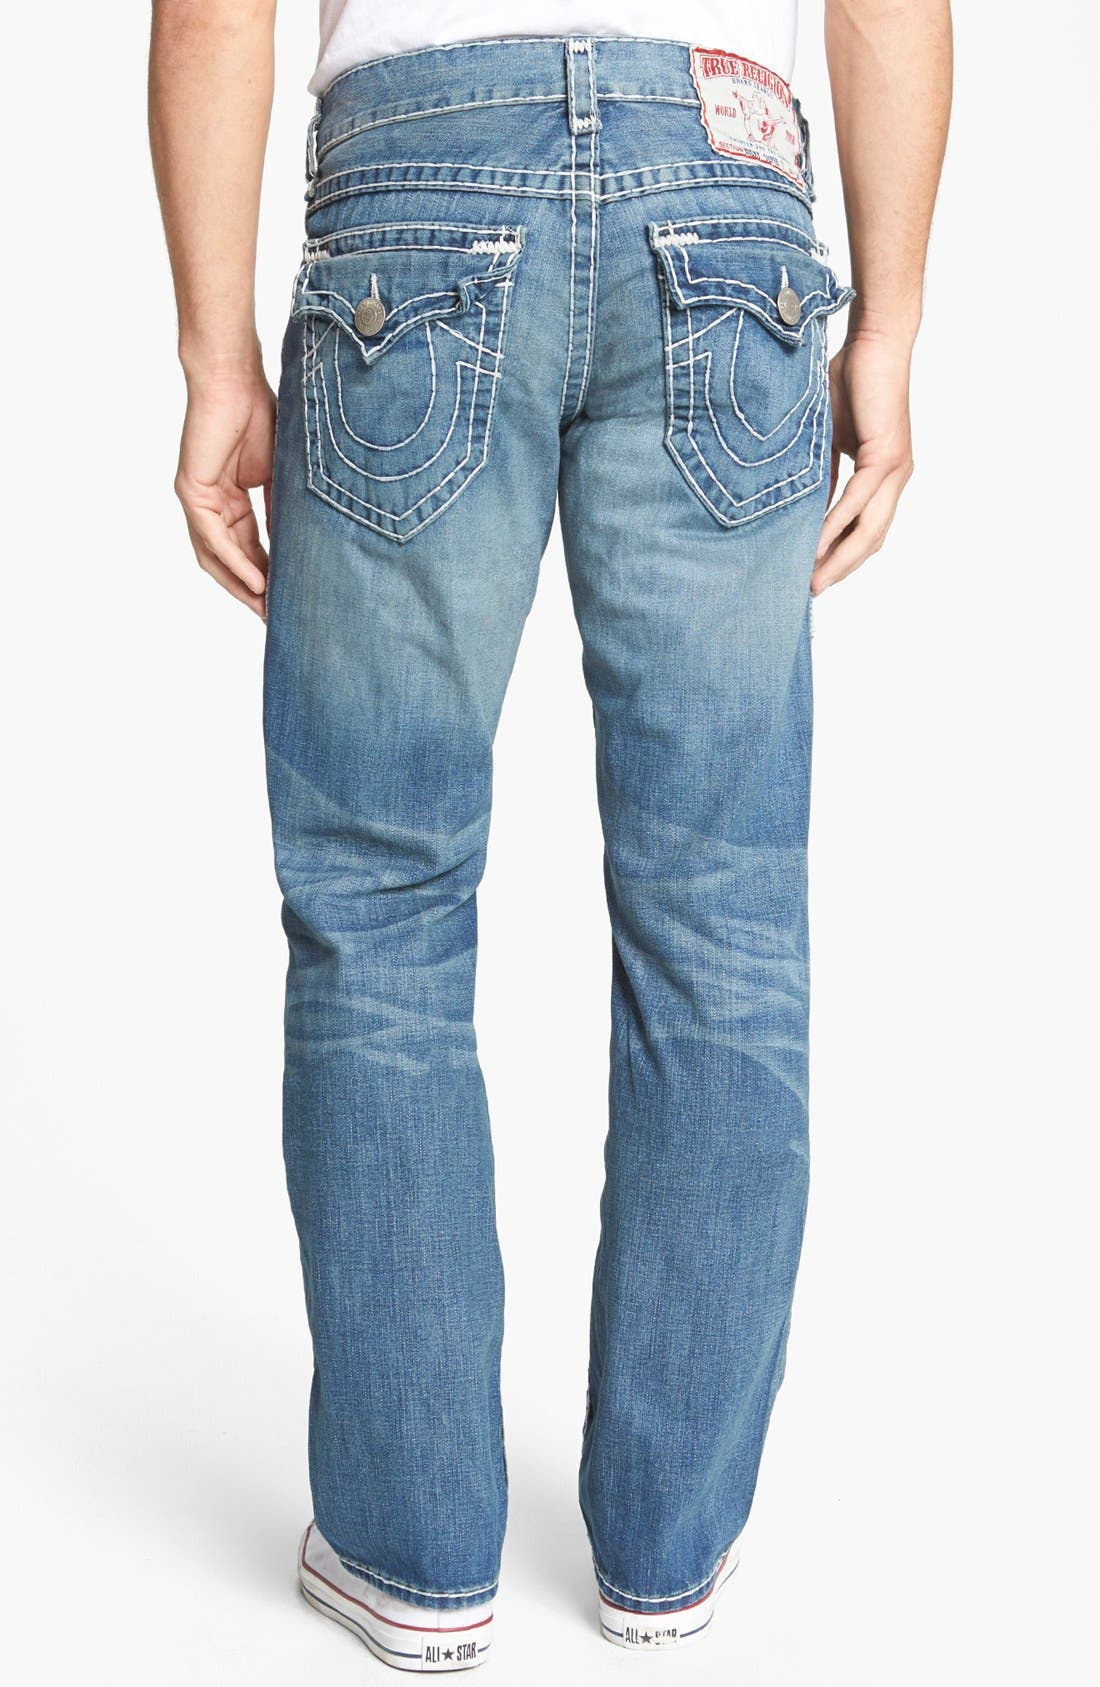 Alternate Image 1 Selected - True Religion Brand Jeans 'Ricky - Natural Super T' Straight Leg Jeans (AADM Devers Canyon)